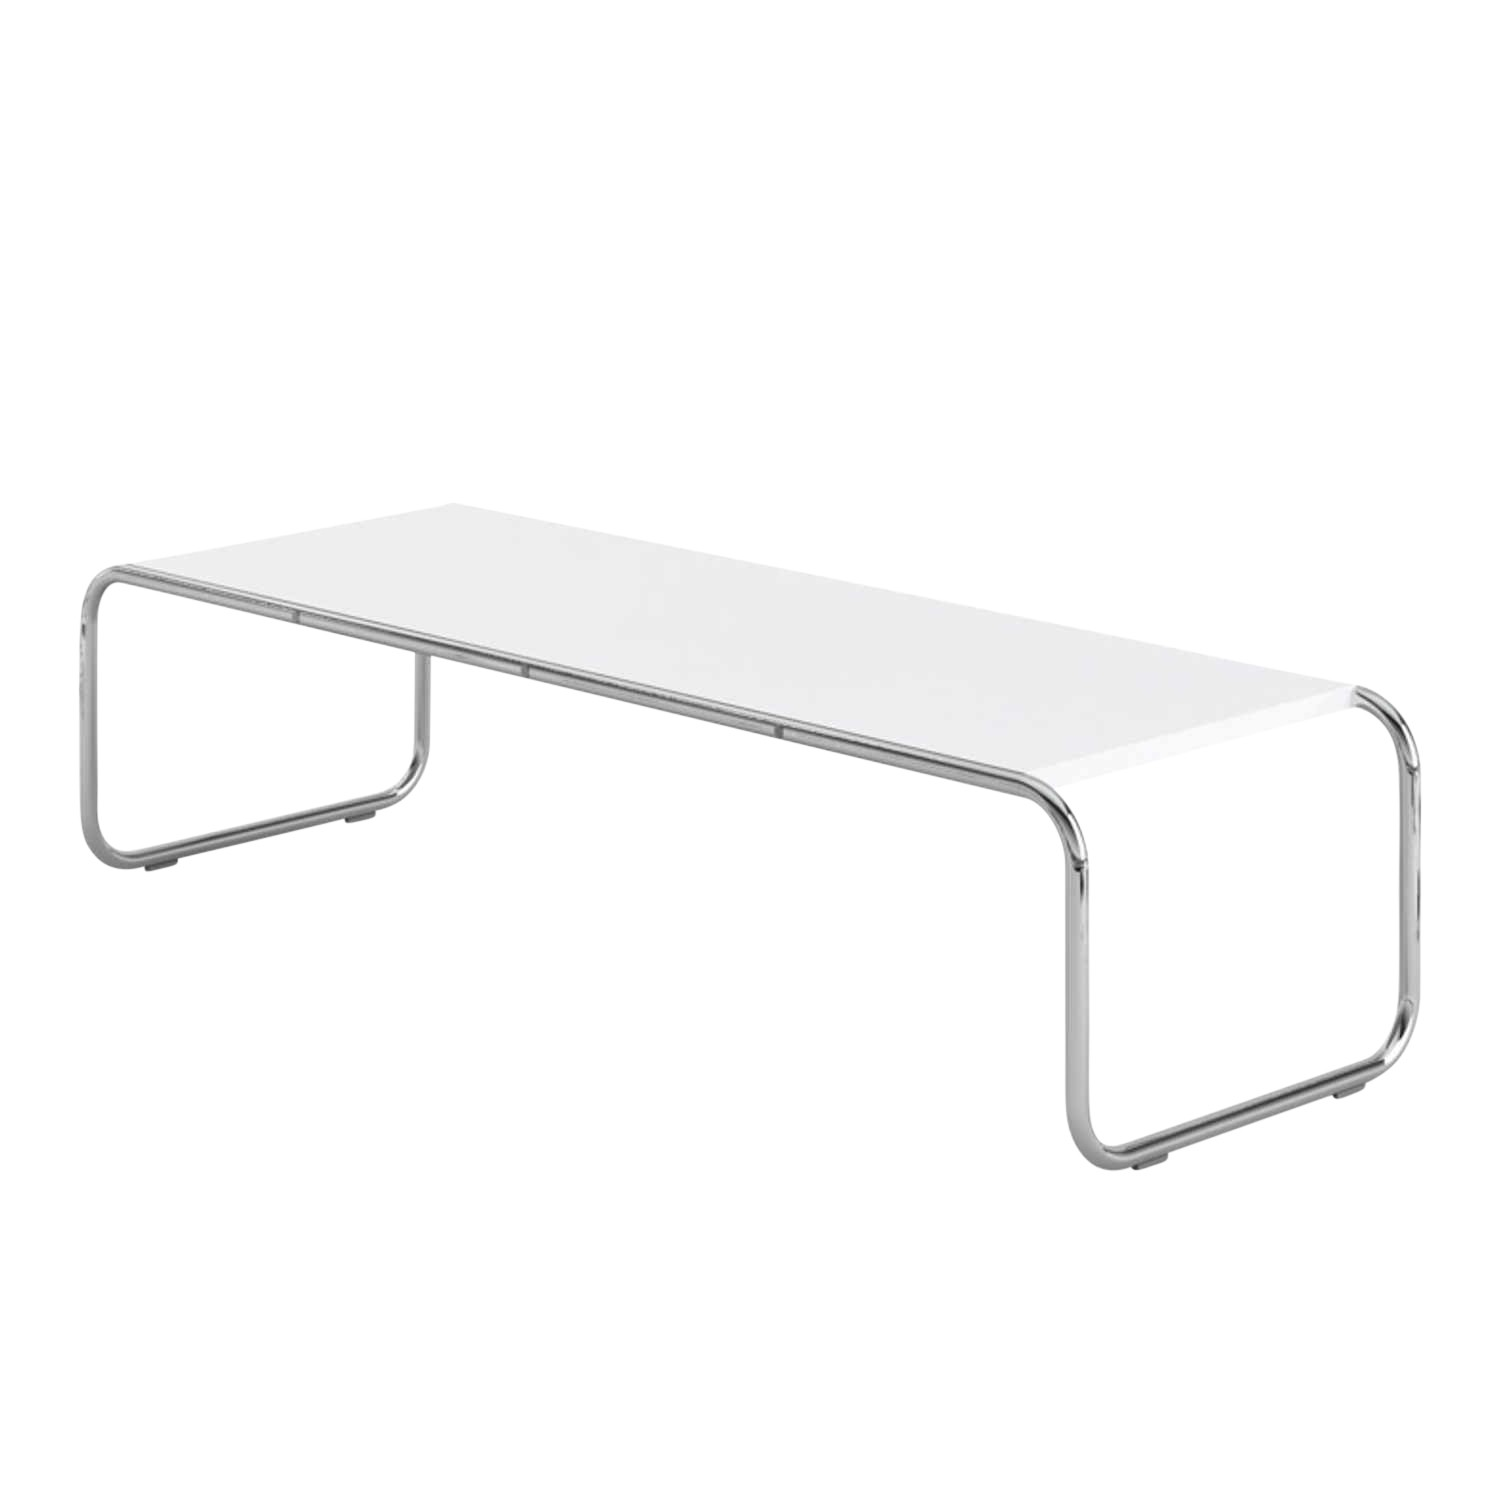 Knoll International Couchtisch Laccio 2 Coffee Table Couchtisch